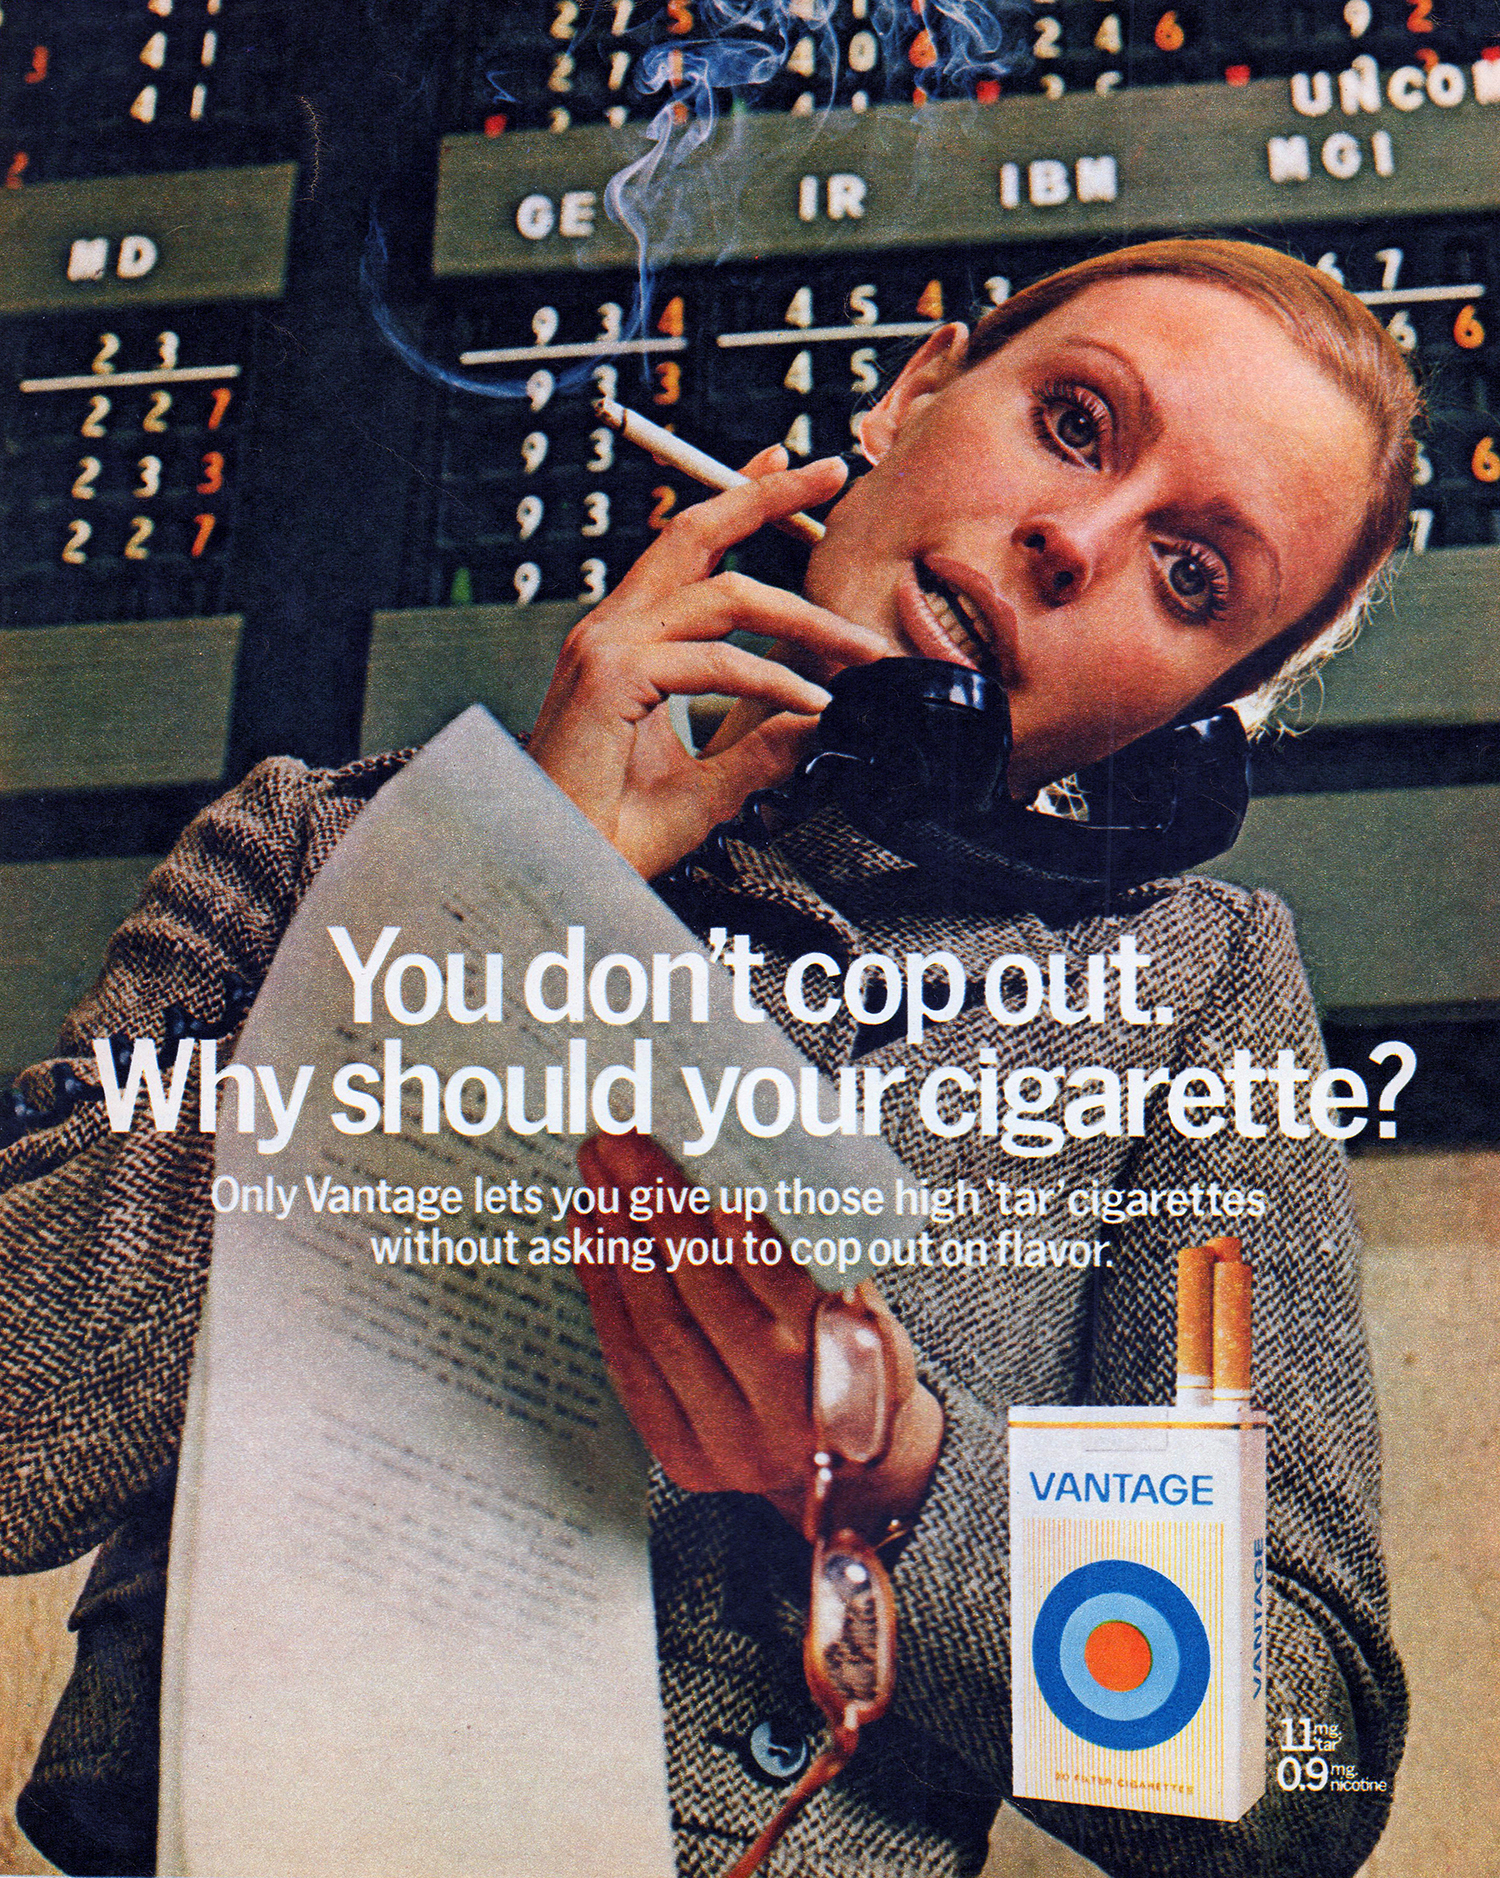 vantage cigarette advertising